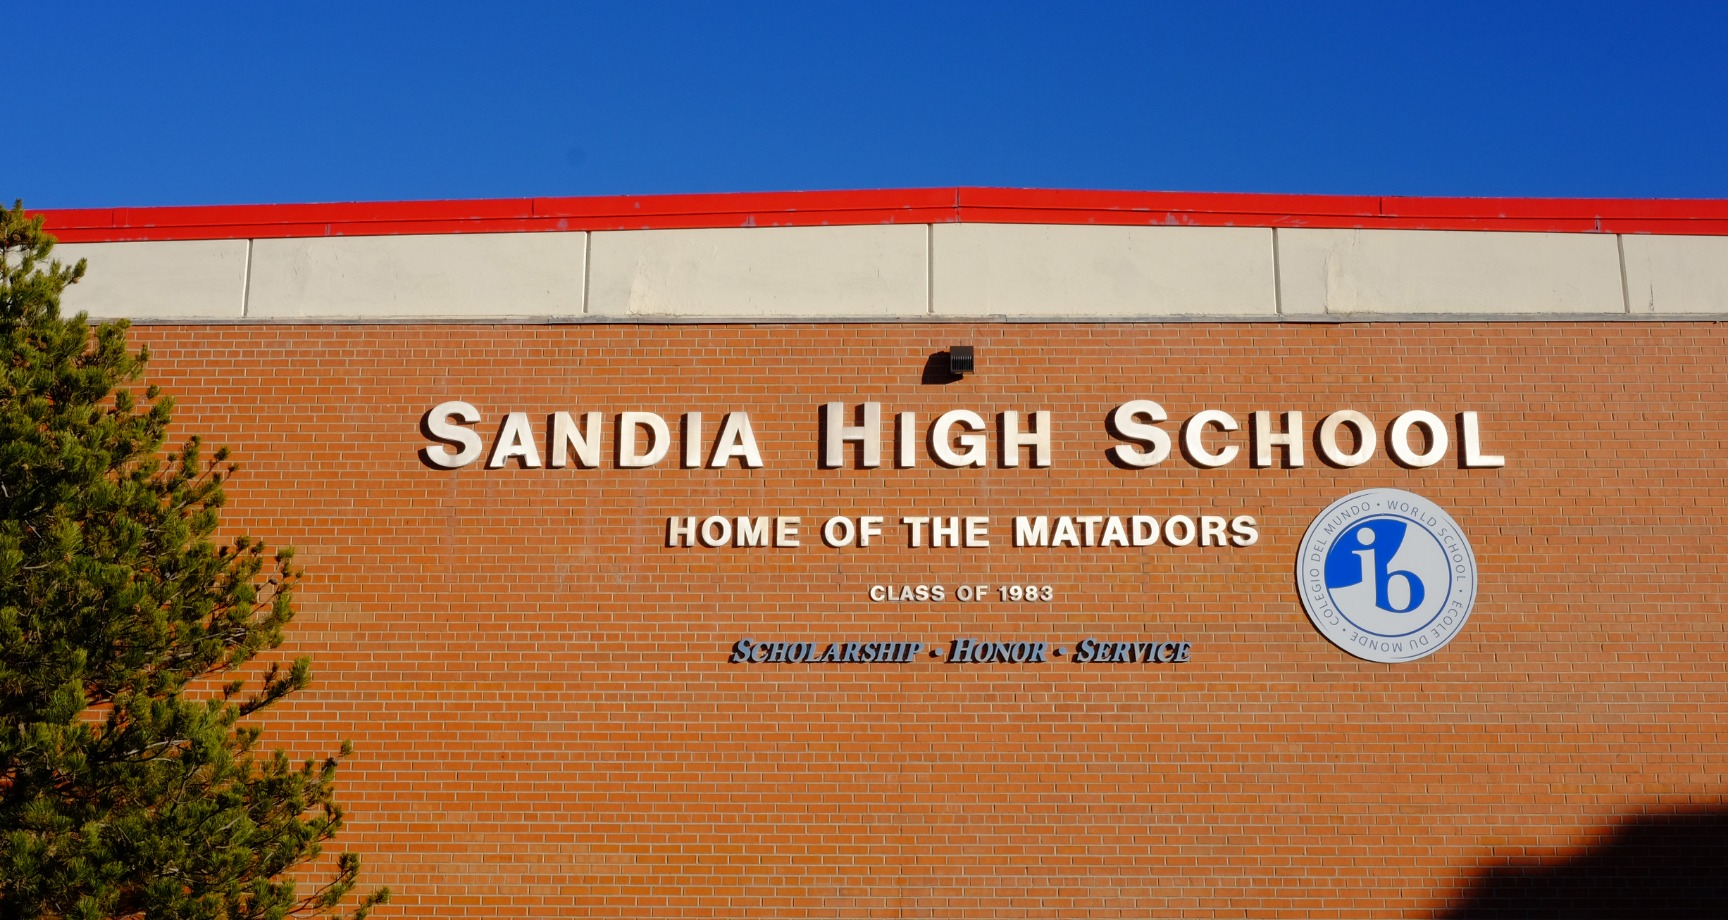 Photo of the Sandia school building